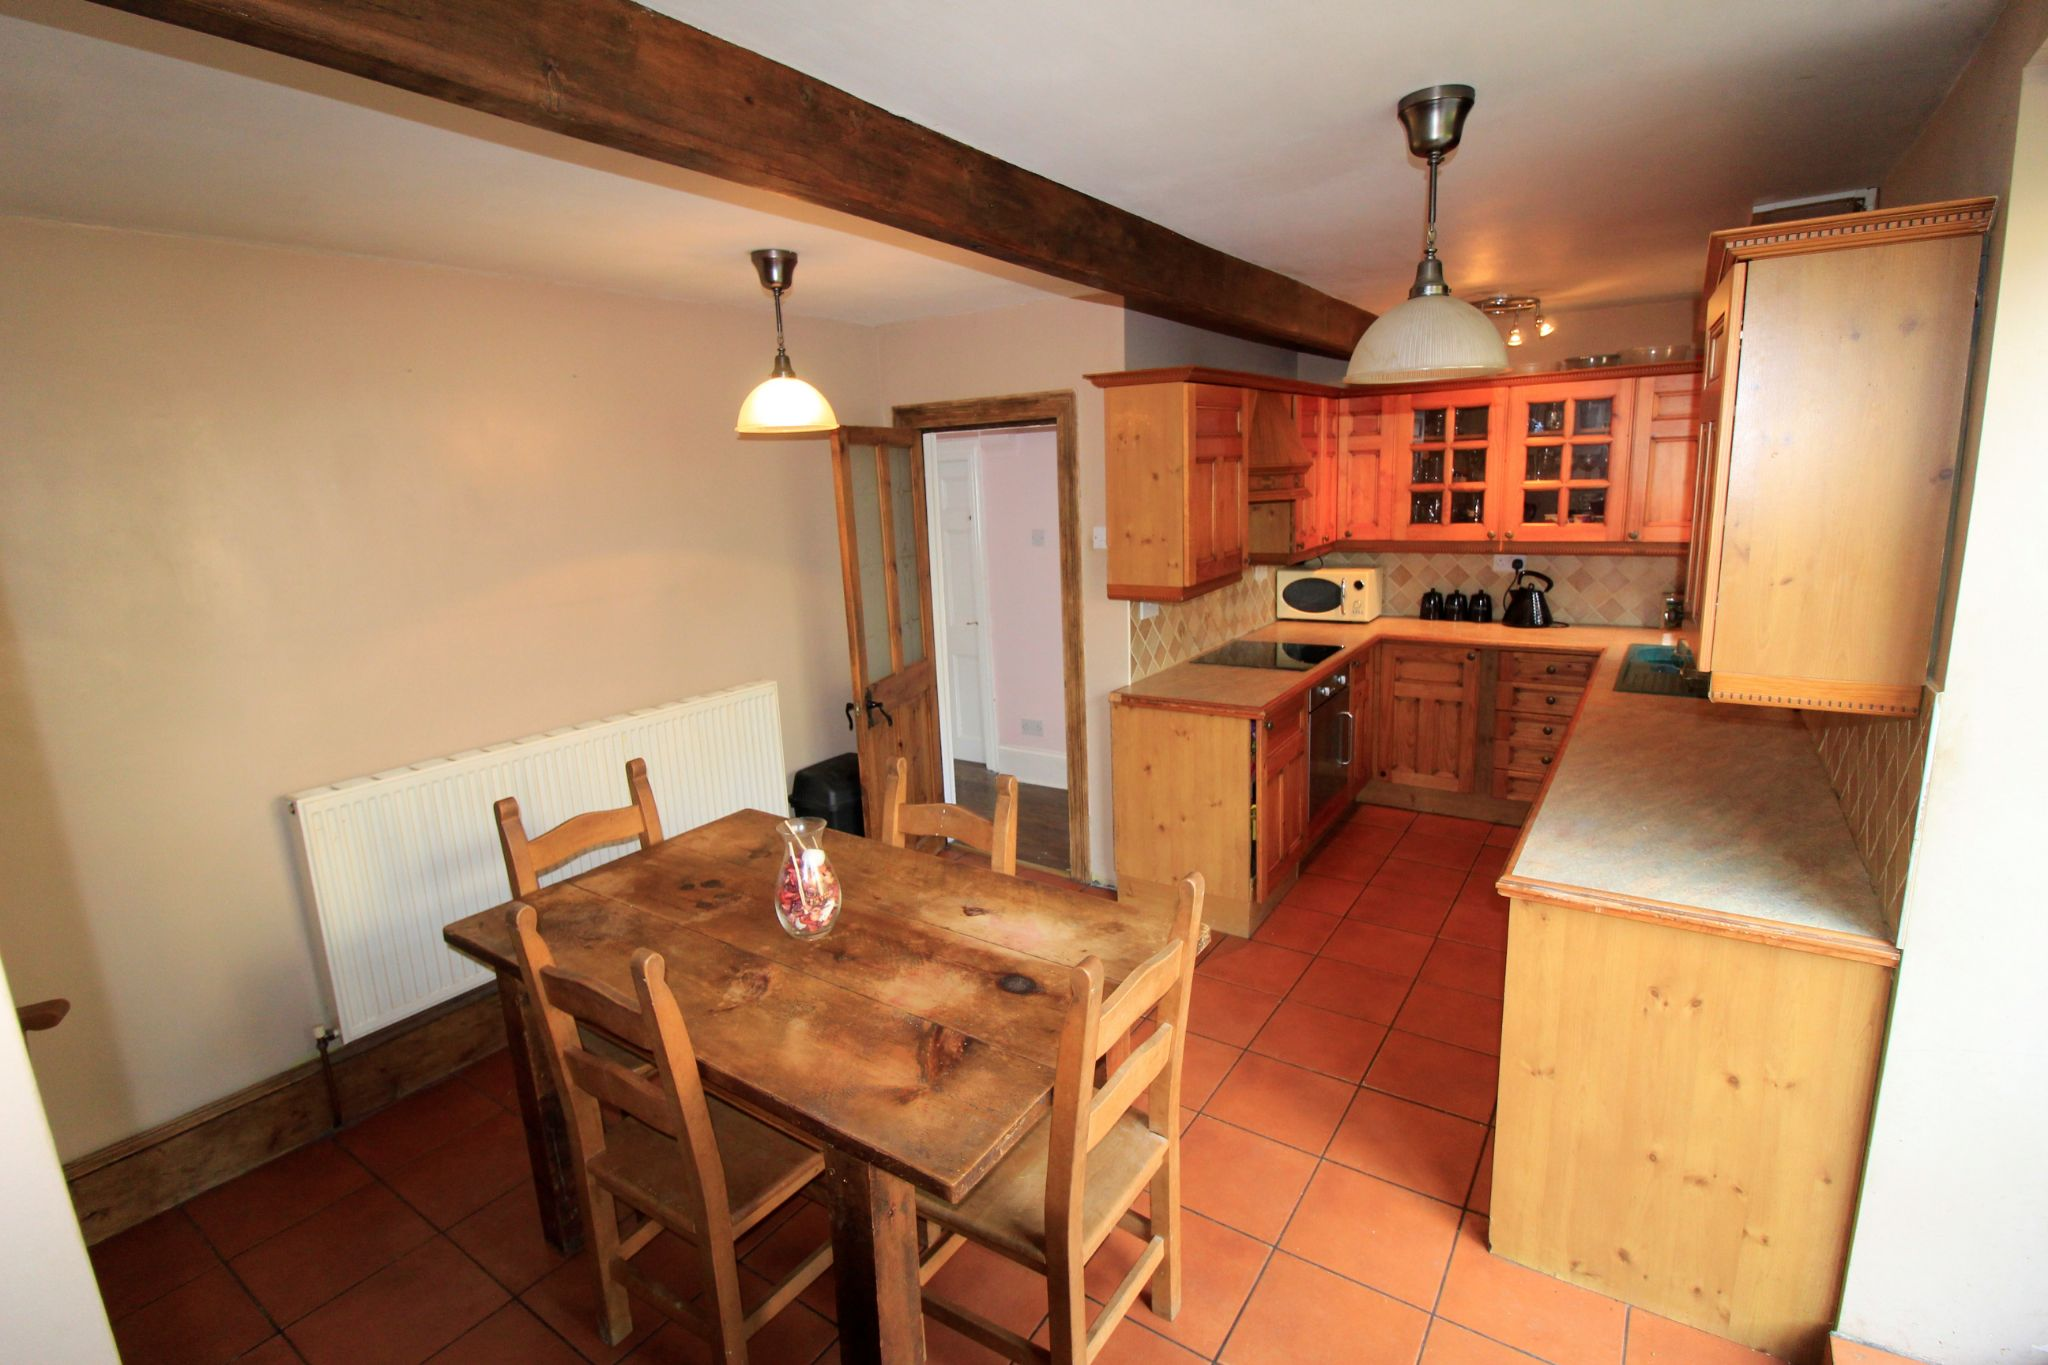 3 bedroom mid terraced house SSTC in Bradford - Dining kitchen